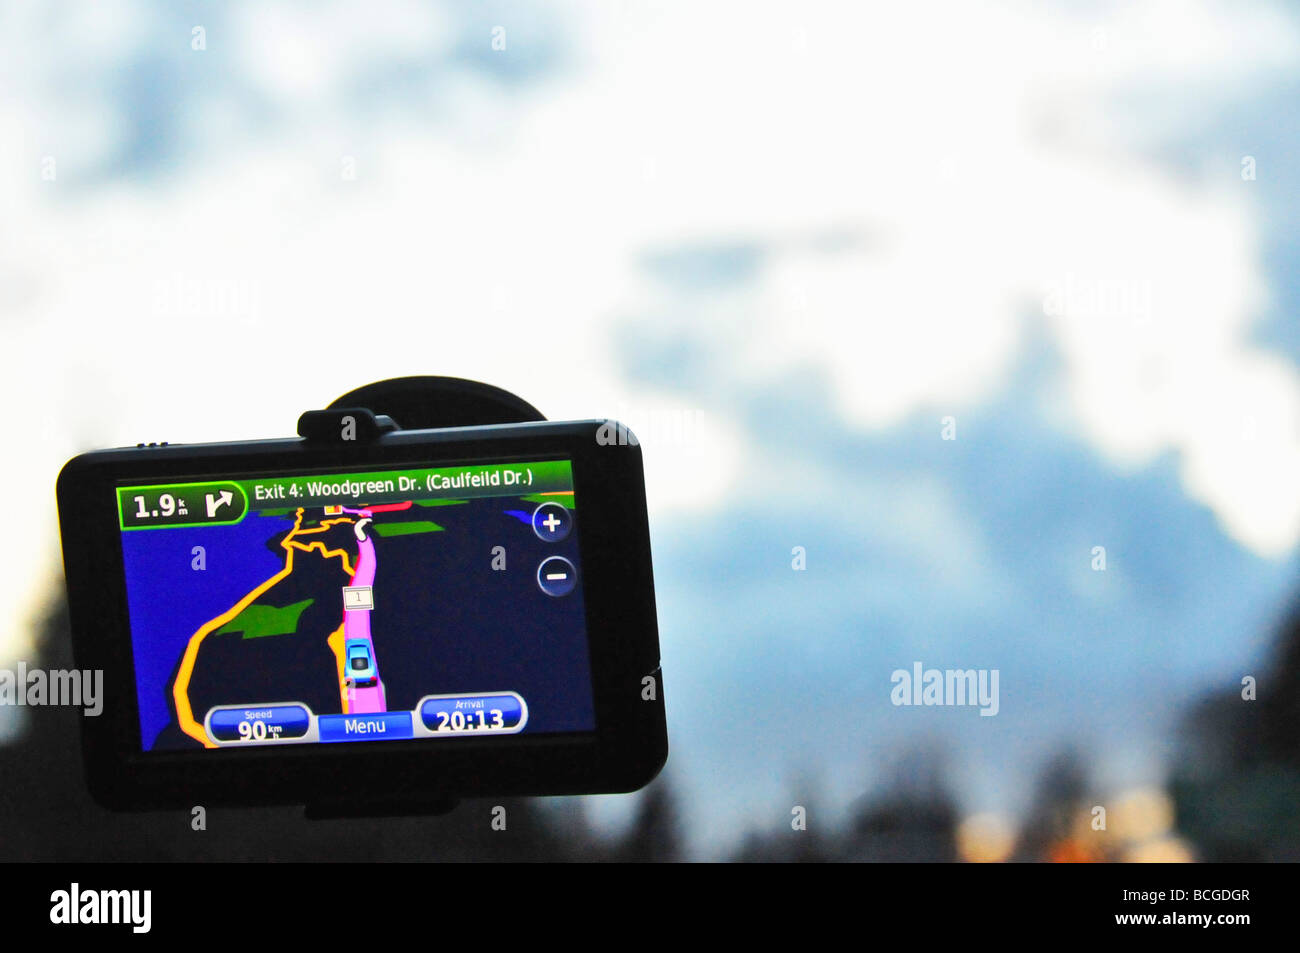 GPS navigation device in a car - Stock Image